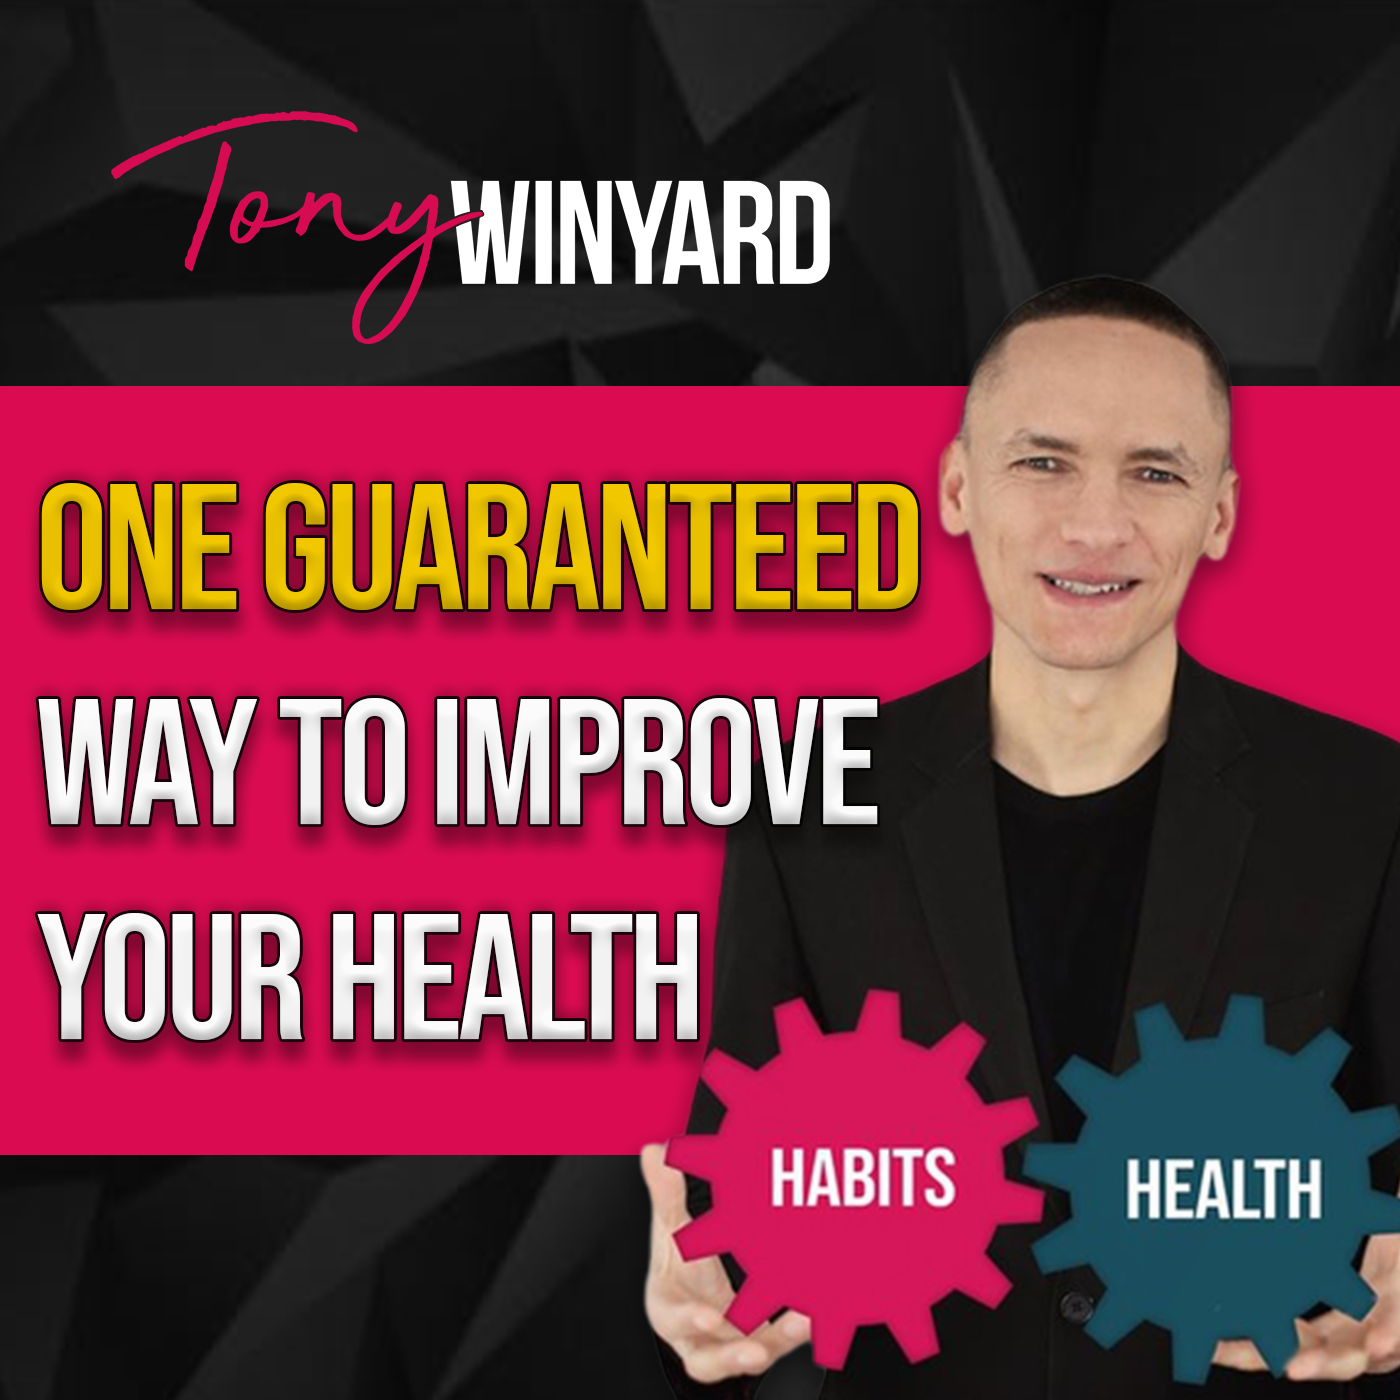 One Guaranteed Way to Improve Your Health